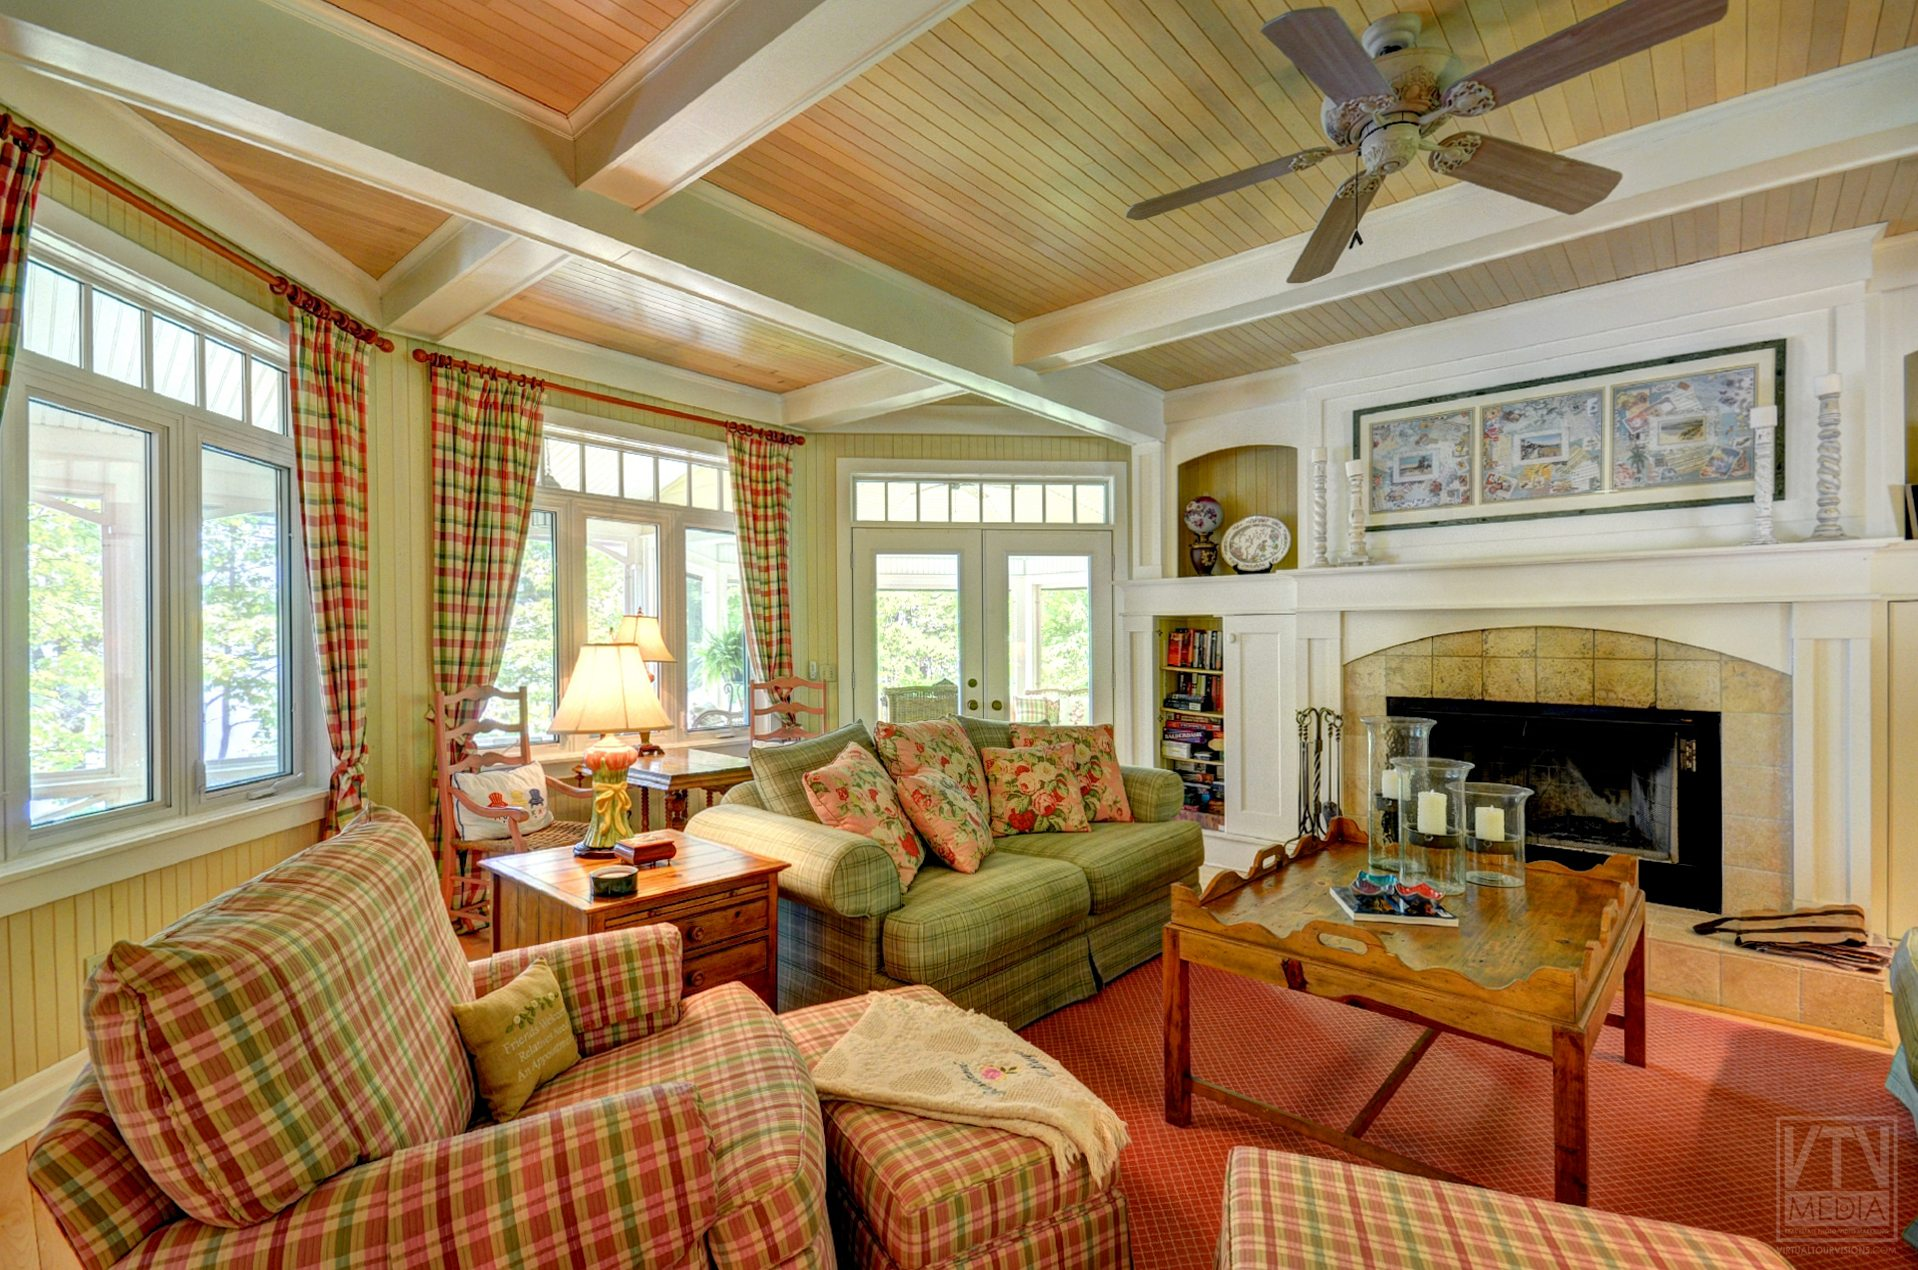 milford-bay-cottage-for-sale-1022-milford-manor-road-4